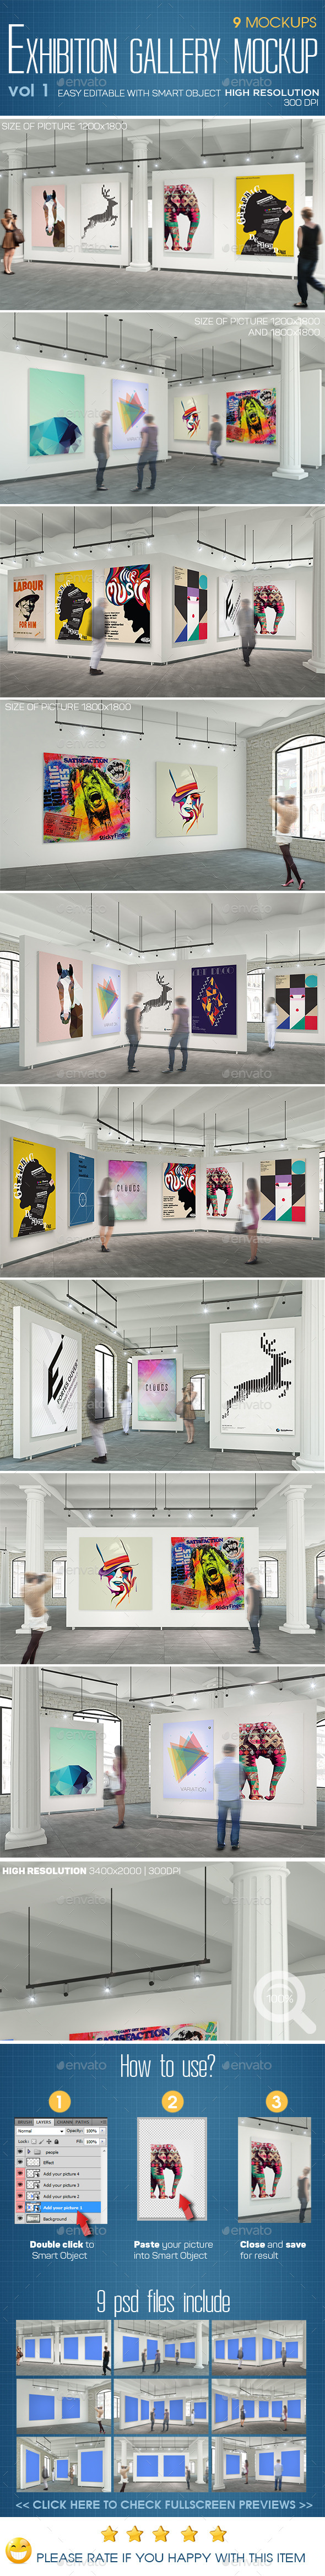 Exhibition Gallery Mockup v.1 - Classical Interior - Posters Print